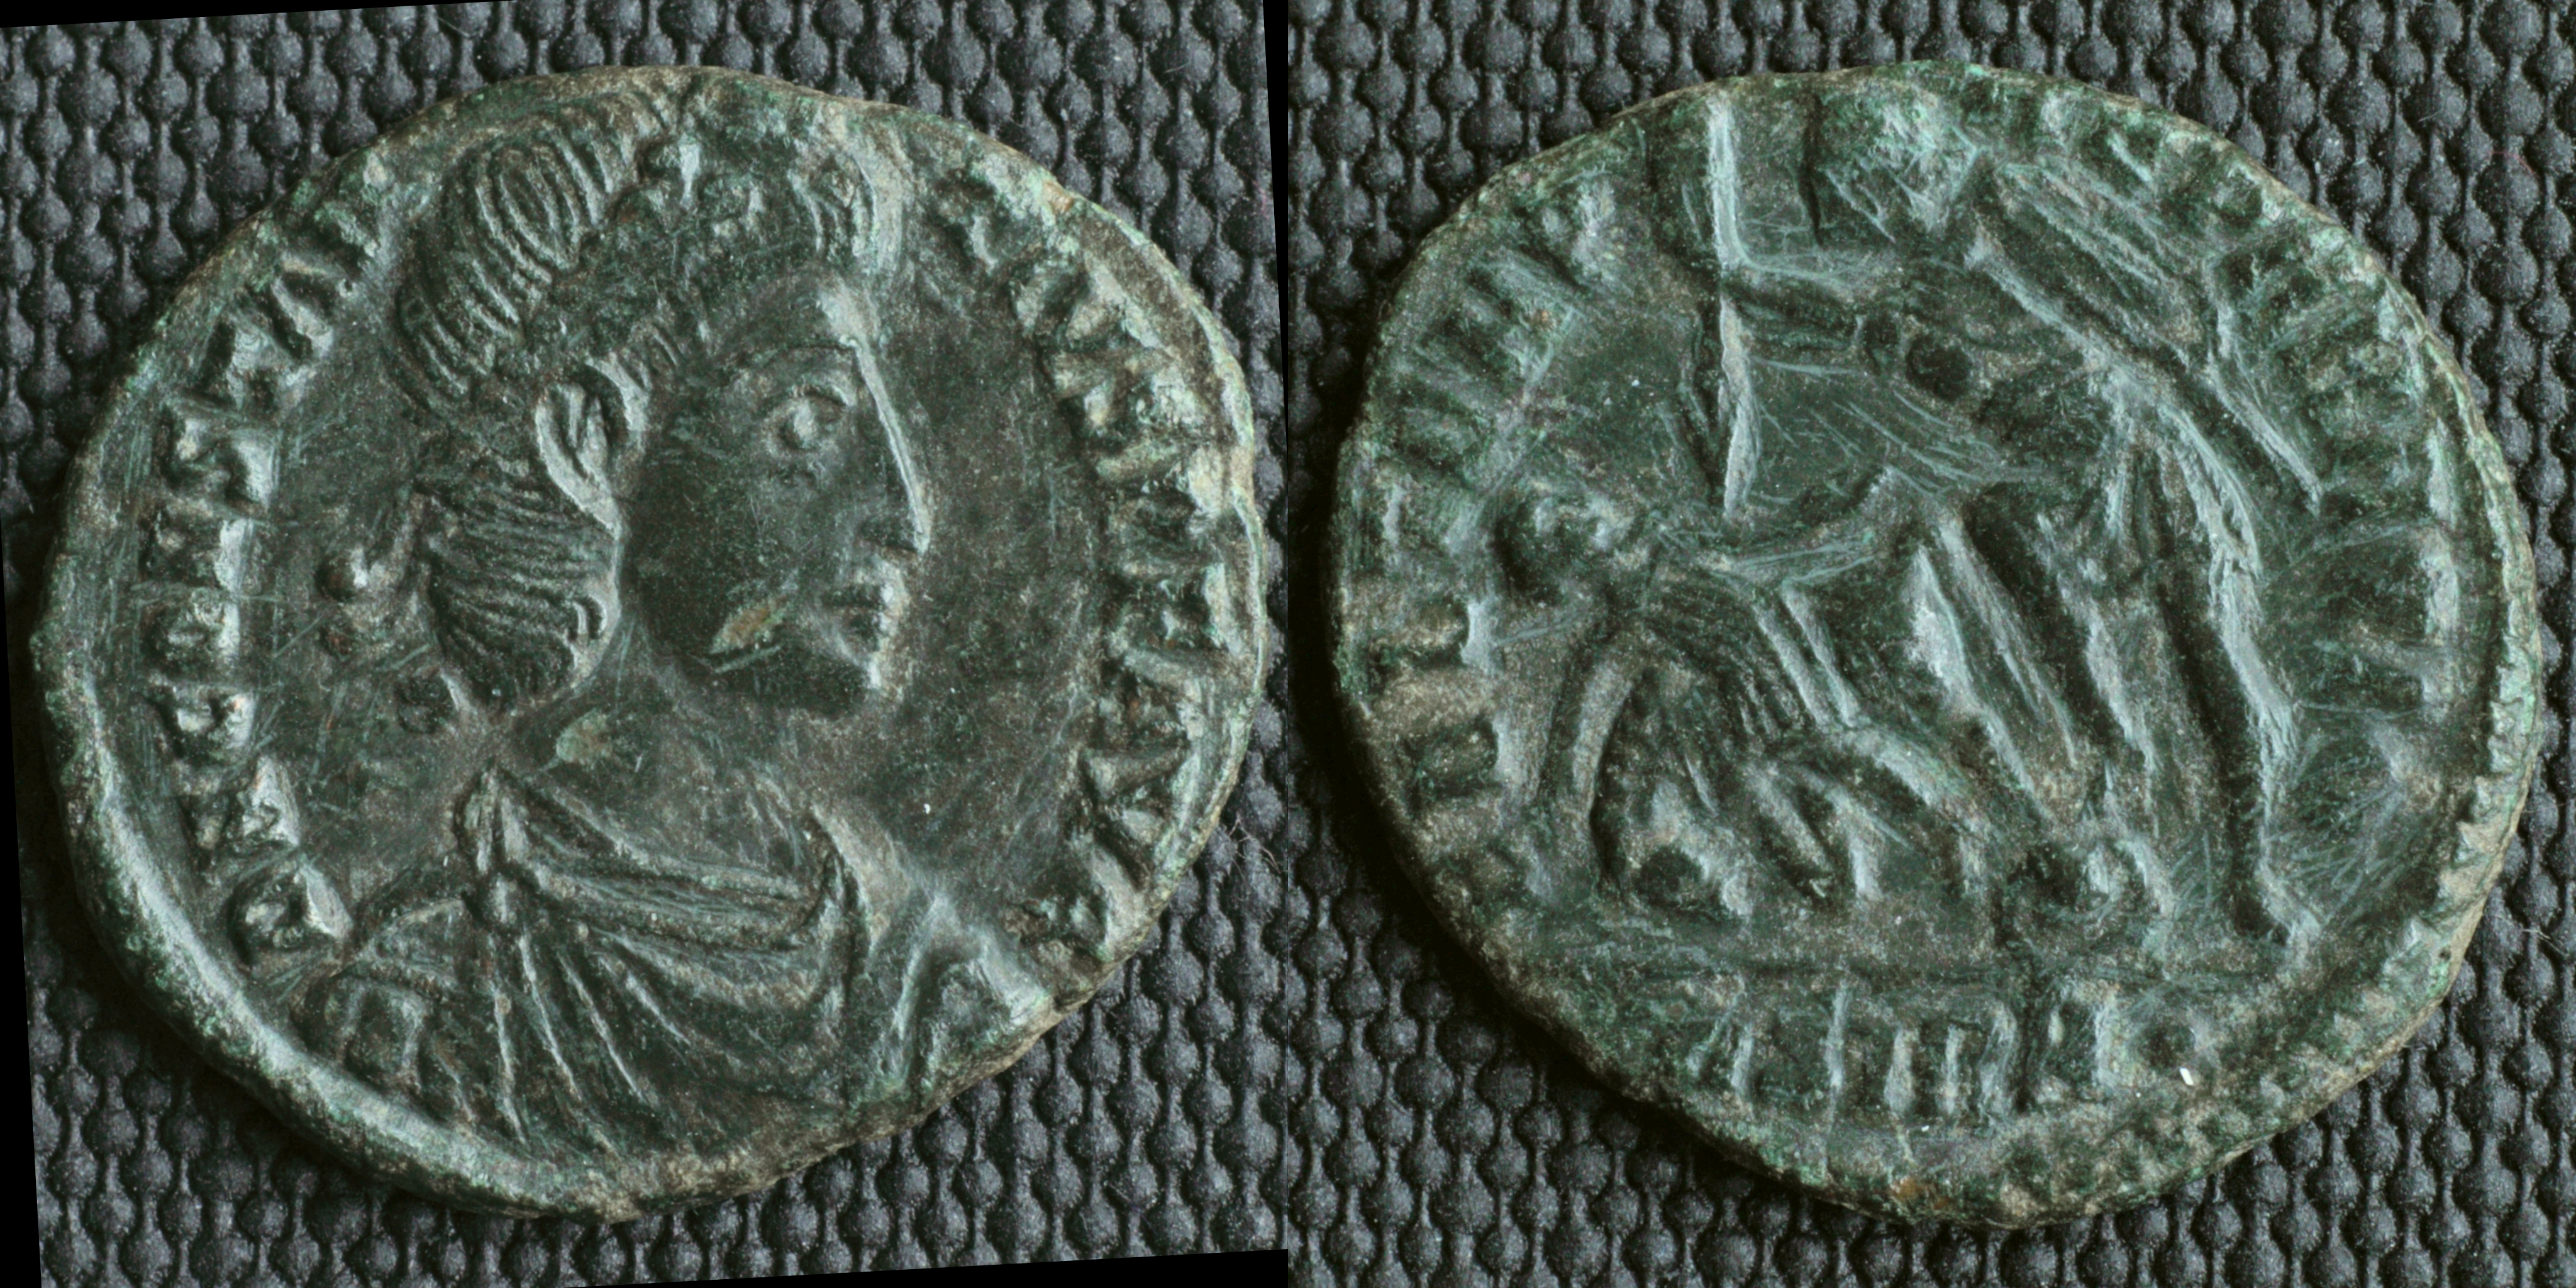 /Files/Images/Coinsite/CoinDB/97_Constantius_II_ASIRM.jpg